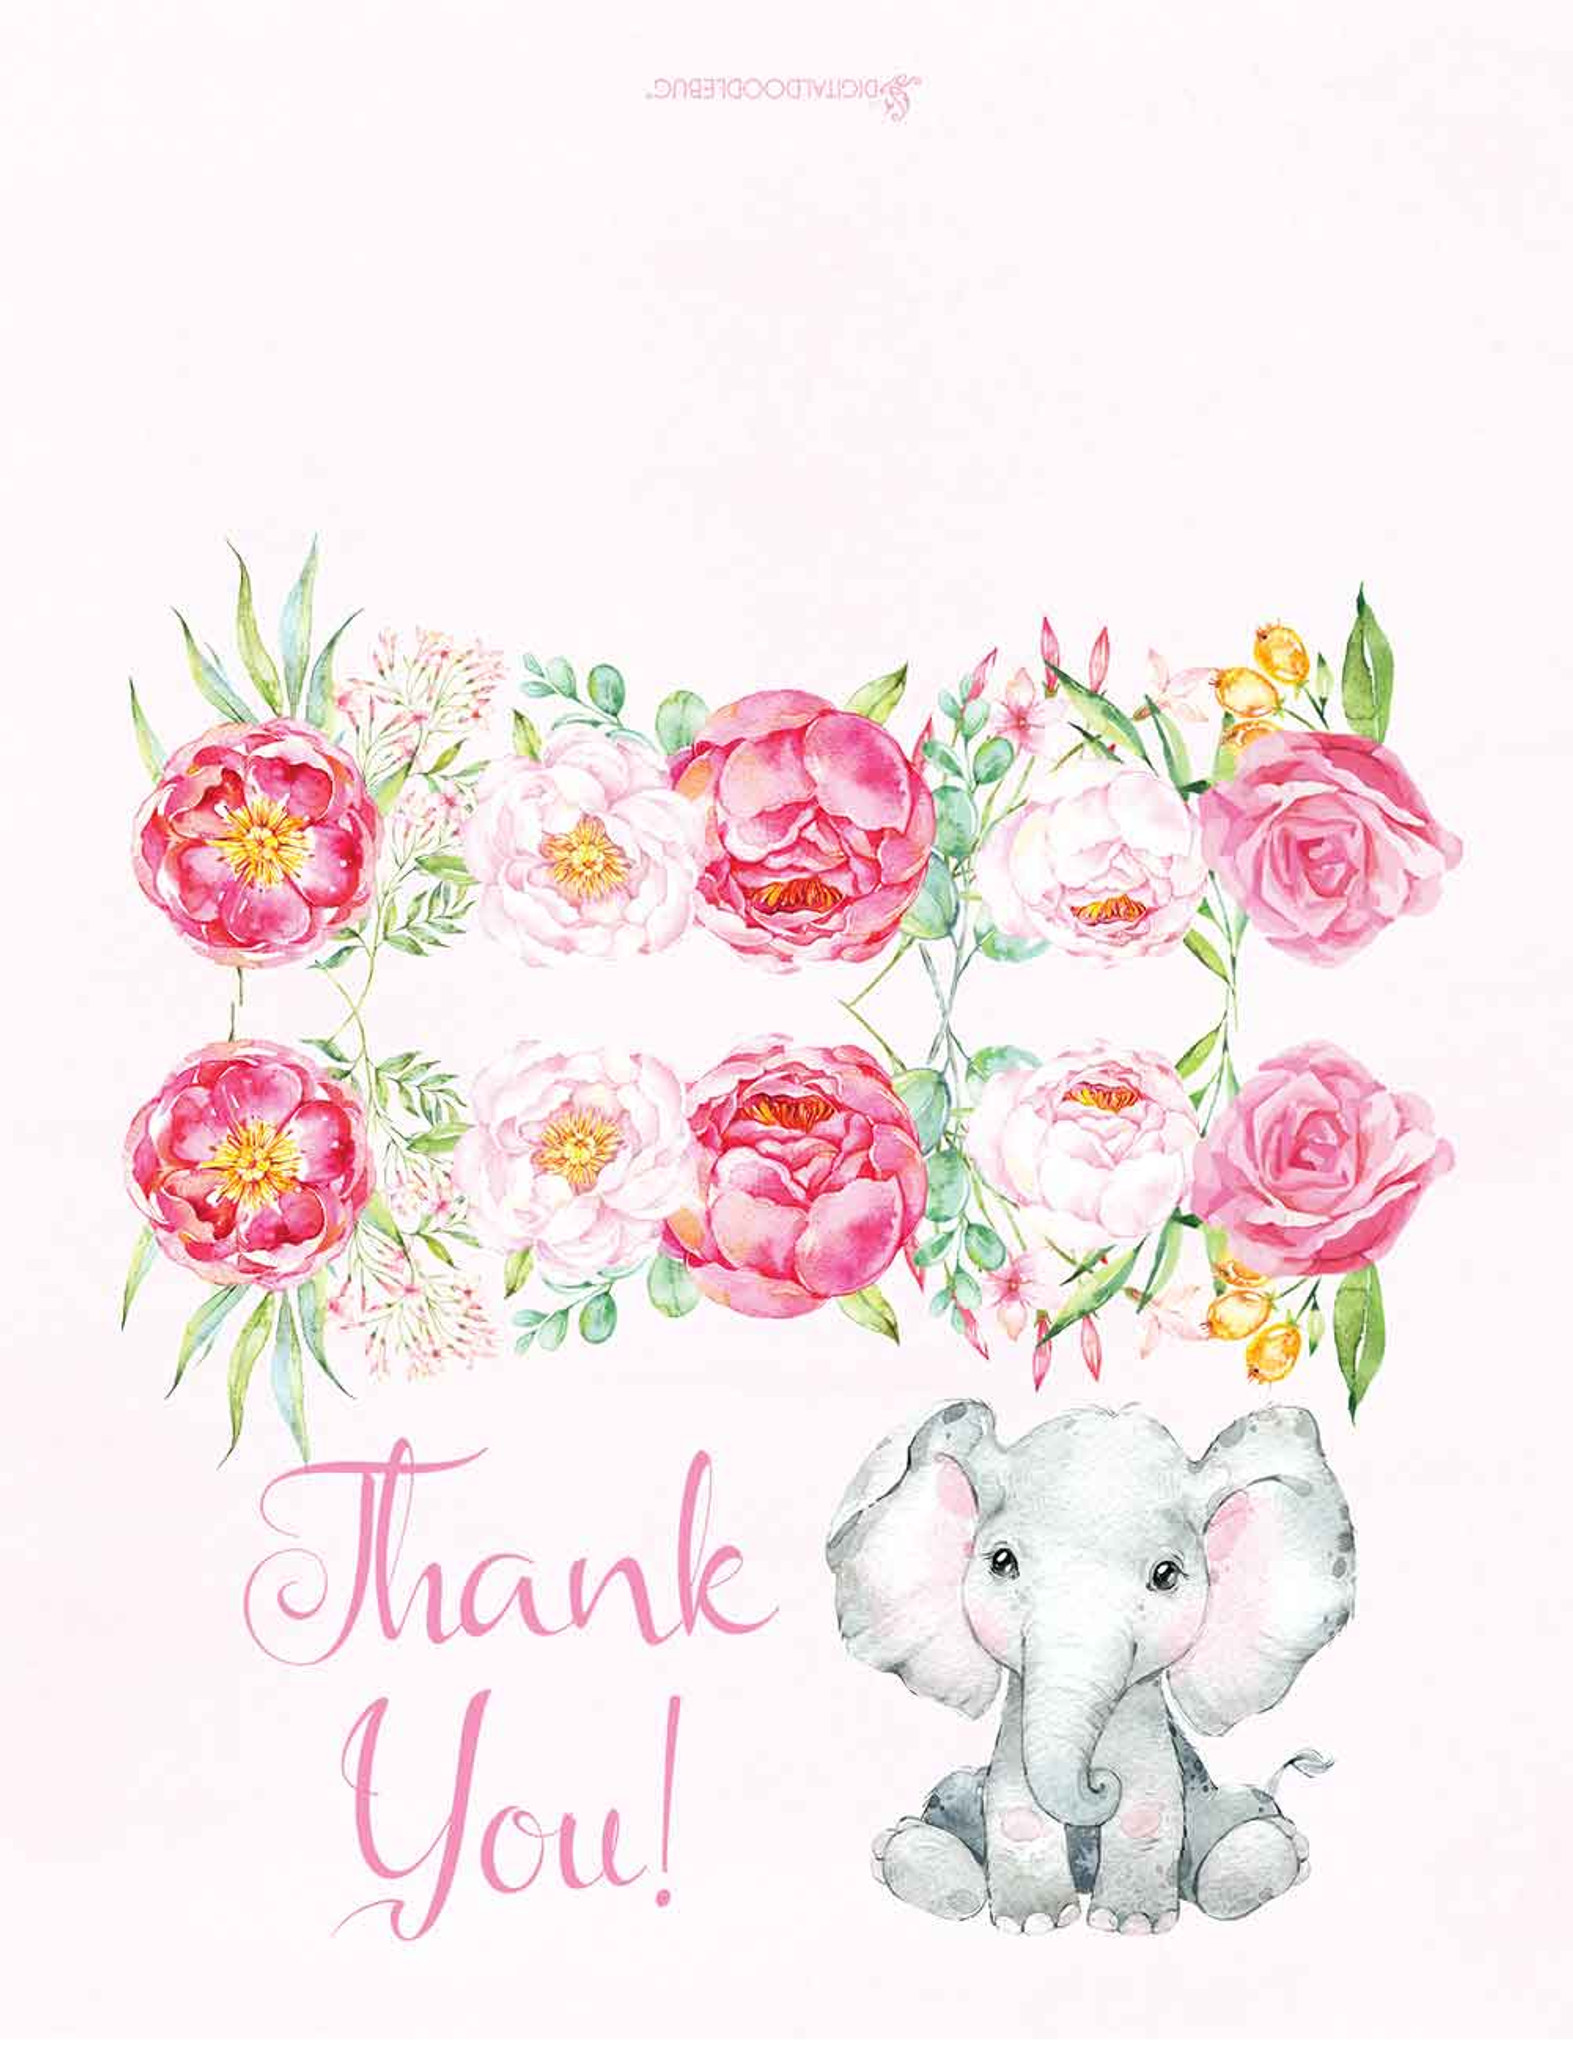 25 Thank You Cards Blank Inside W Envelopes Girl Baby Shower Pink Floral Elephant